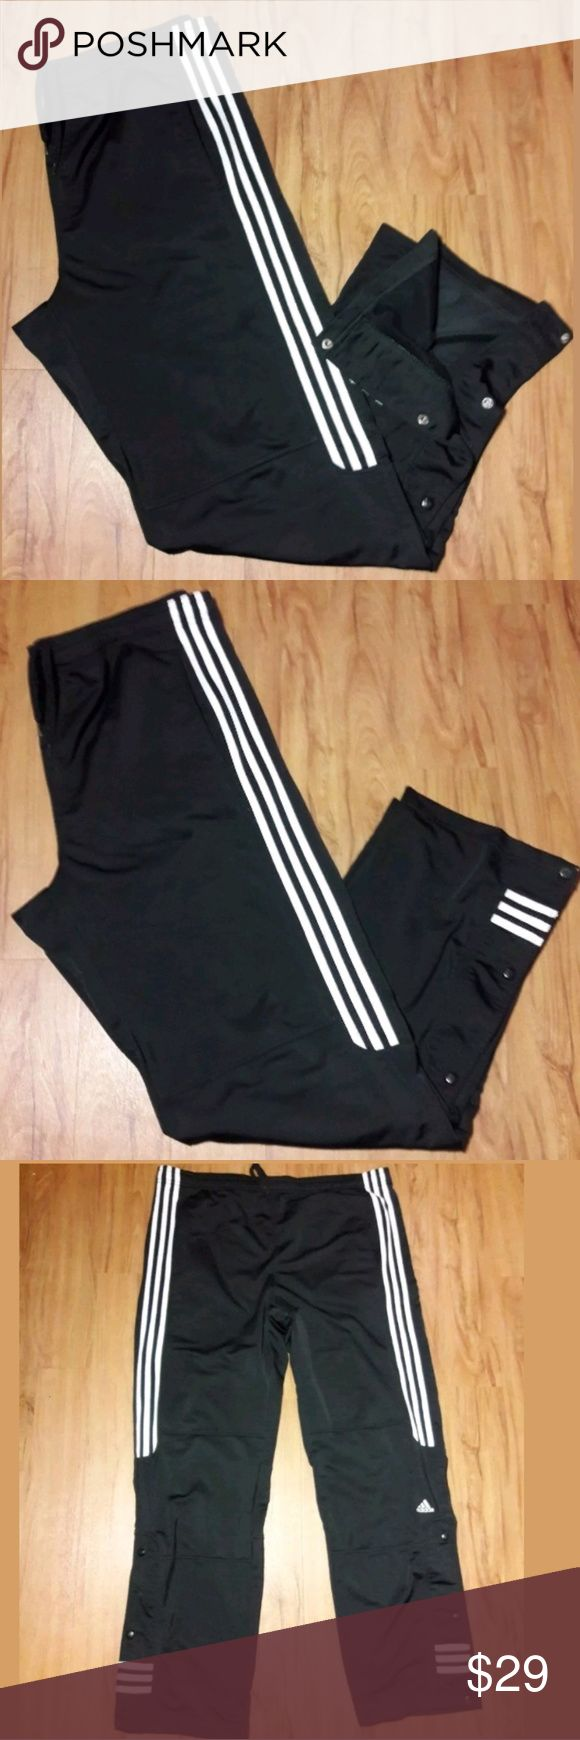 Mens Adidas Warm-Up Track Pants Adidas Mens Large Warm-Up Half Snap Black Satin Athletic Track Pants VTG 2003  Pre-owned in Excellent used condition with minor flaws.   Please be sure to view all images before purchasing.  Thank you for Looking & Sharing Happy Poshing😄💗 adidas Pants Sweatpants & Joggers